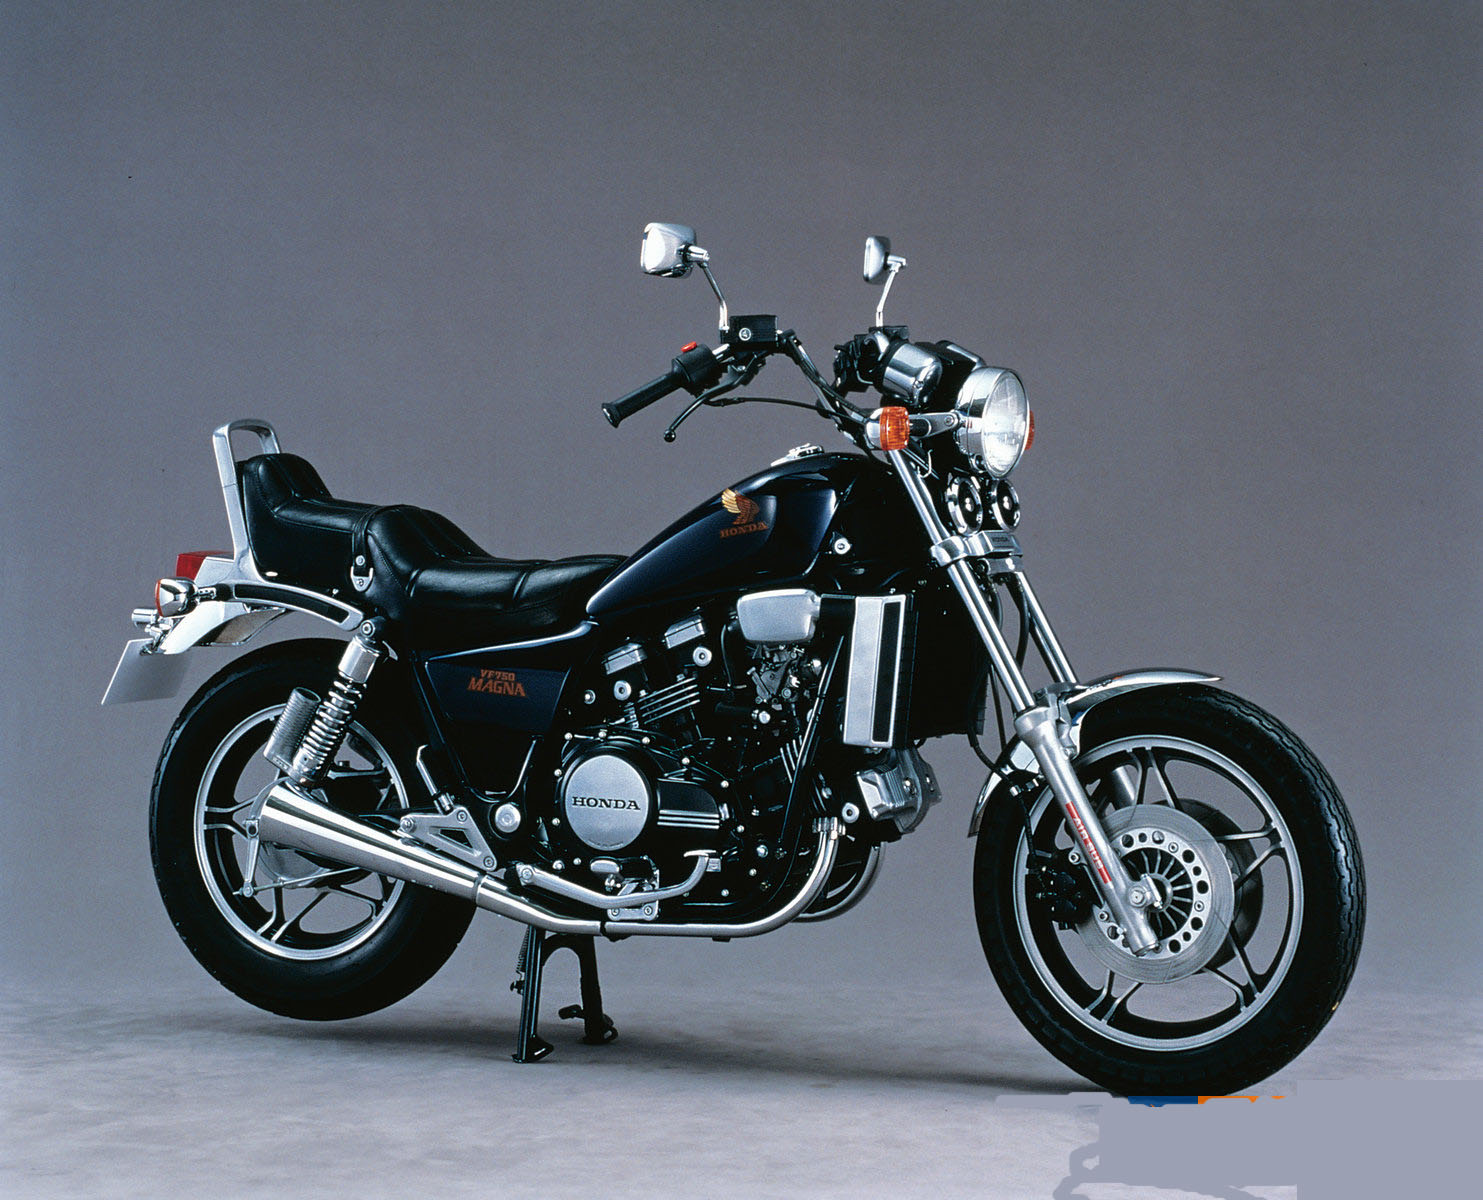 Honda vt750c shadow 2083 further Motorcycle History The Honda 750 Magna furthermore  as well Western Slope Colorado Rifles For Sale Magnum Research 22 Mag Stainless Steel in addition Honda Shadow Bobber. on honda v65 magna motorcycle